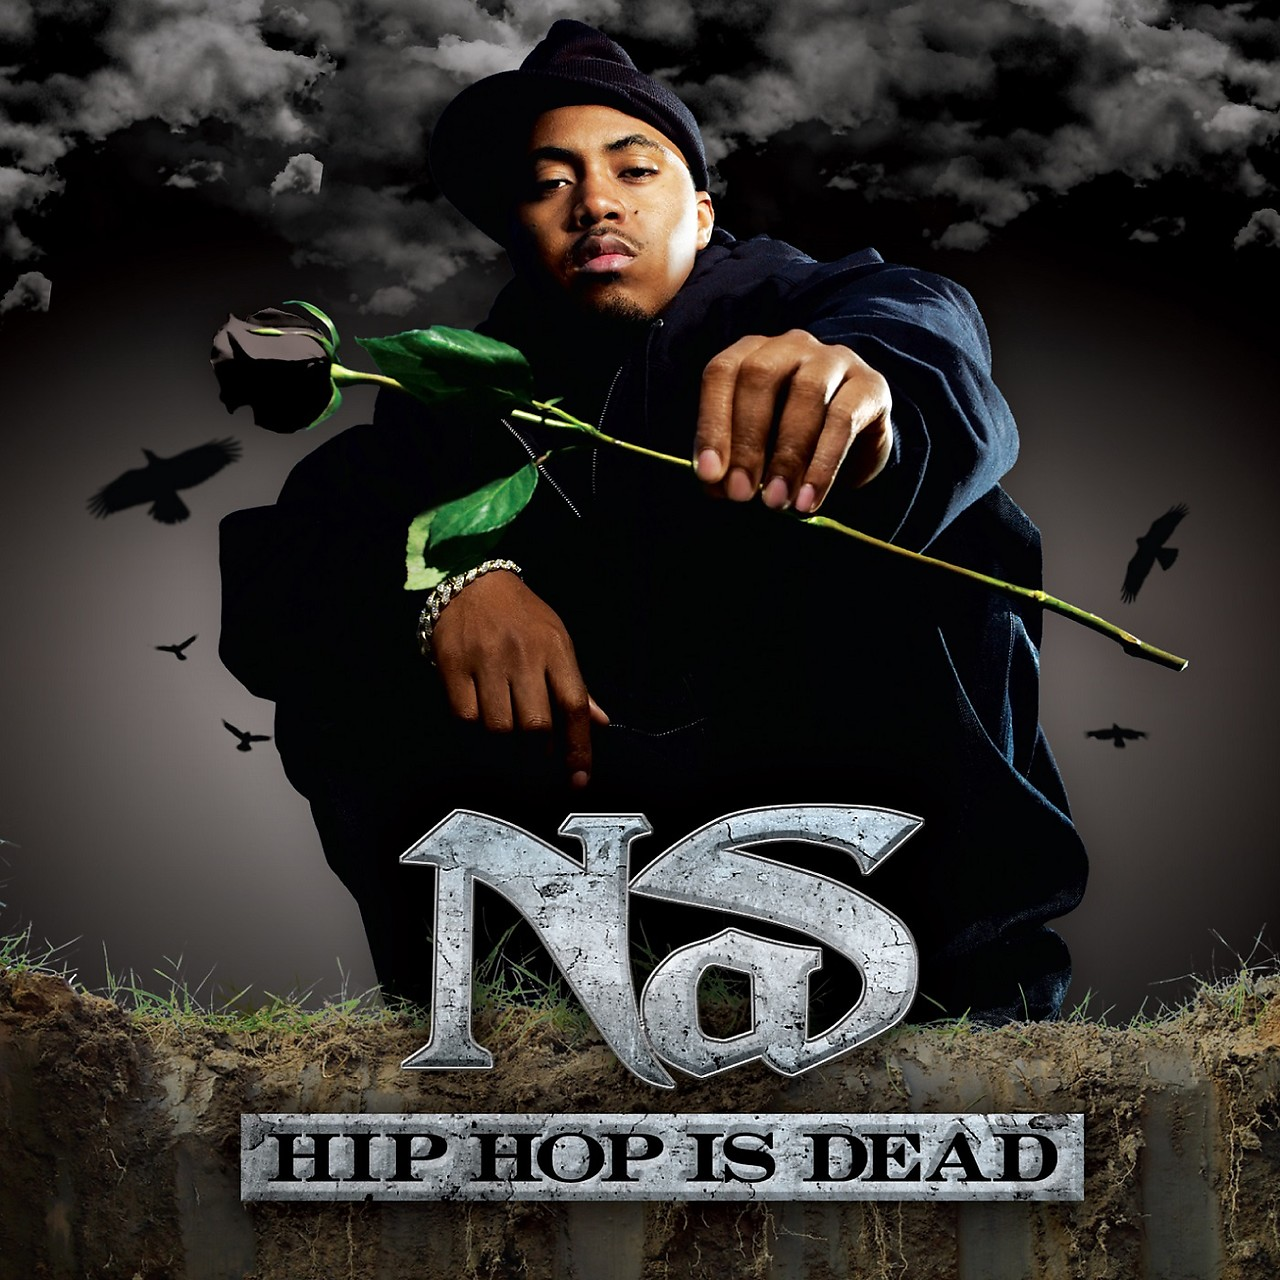 Hip hop is dead by nas on spotify.